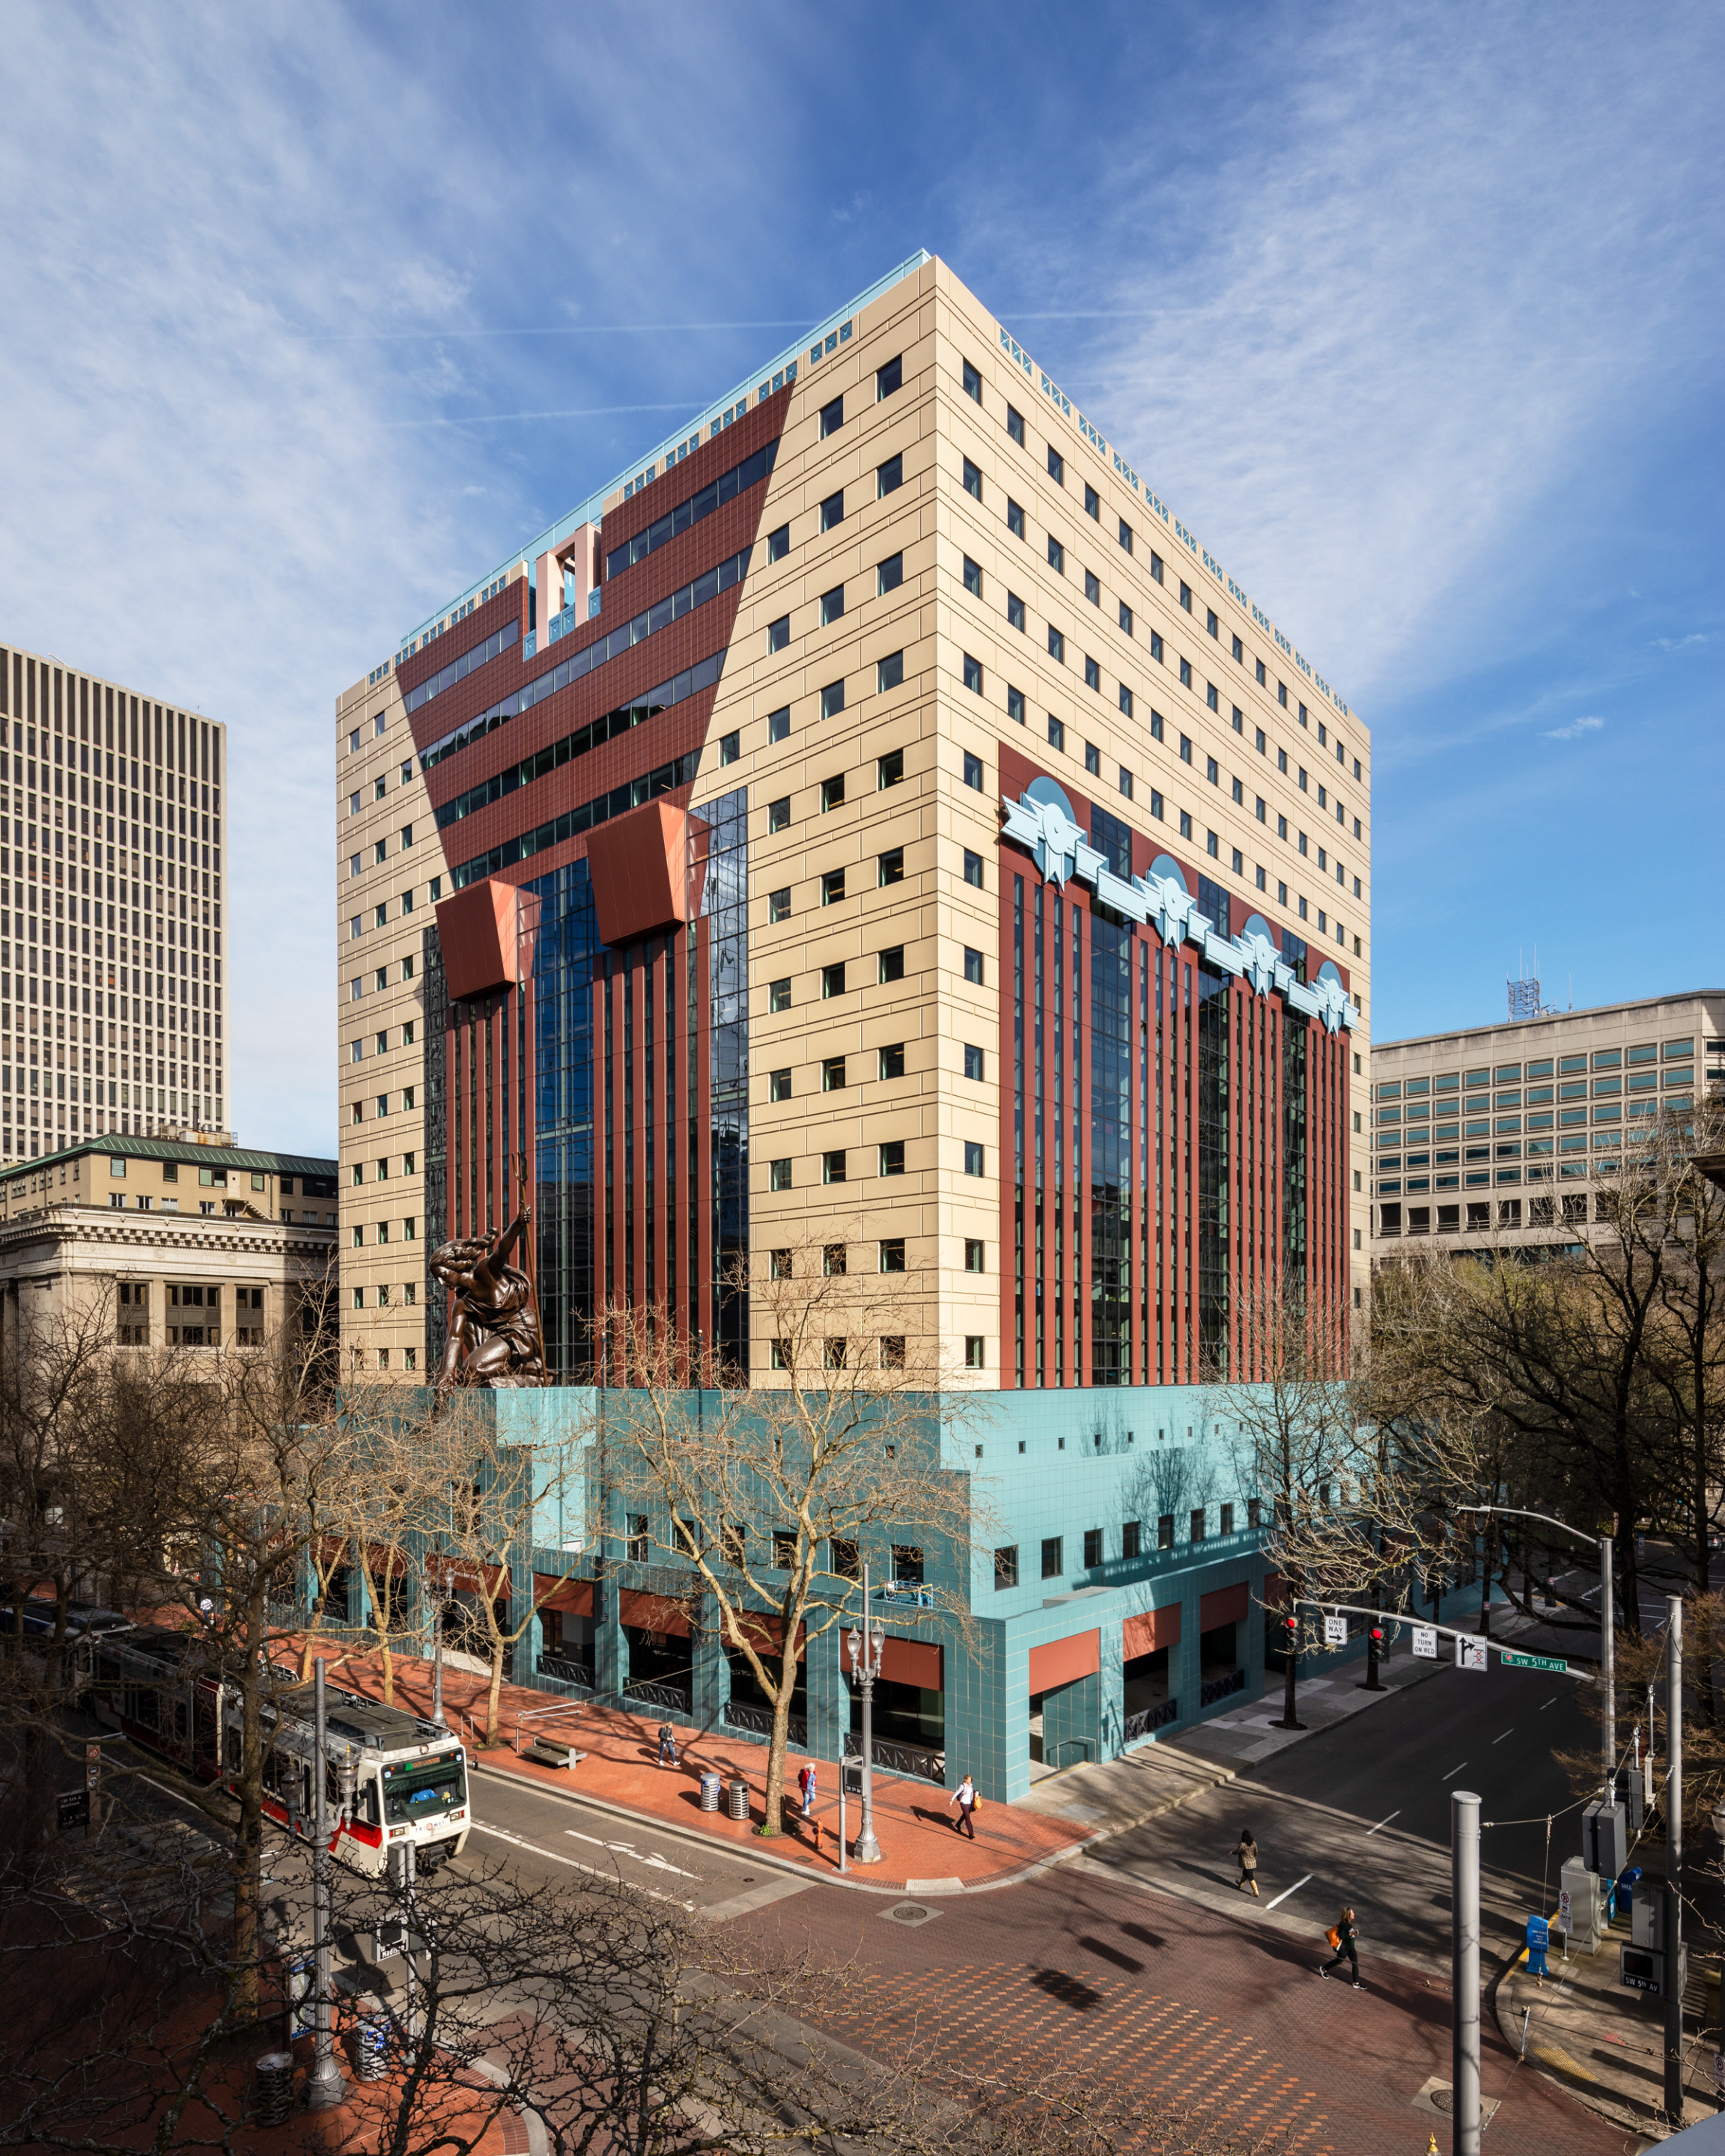 Contextual image of the Portland Building within Downtown Portland